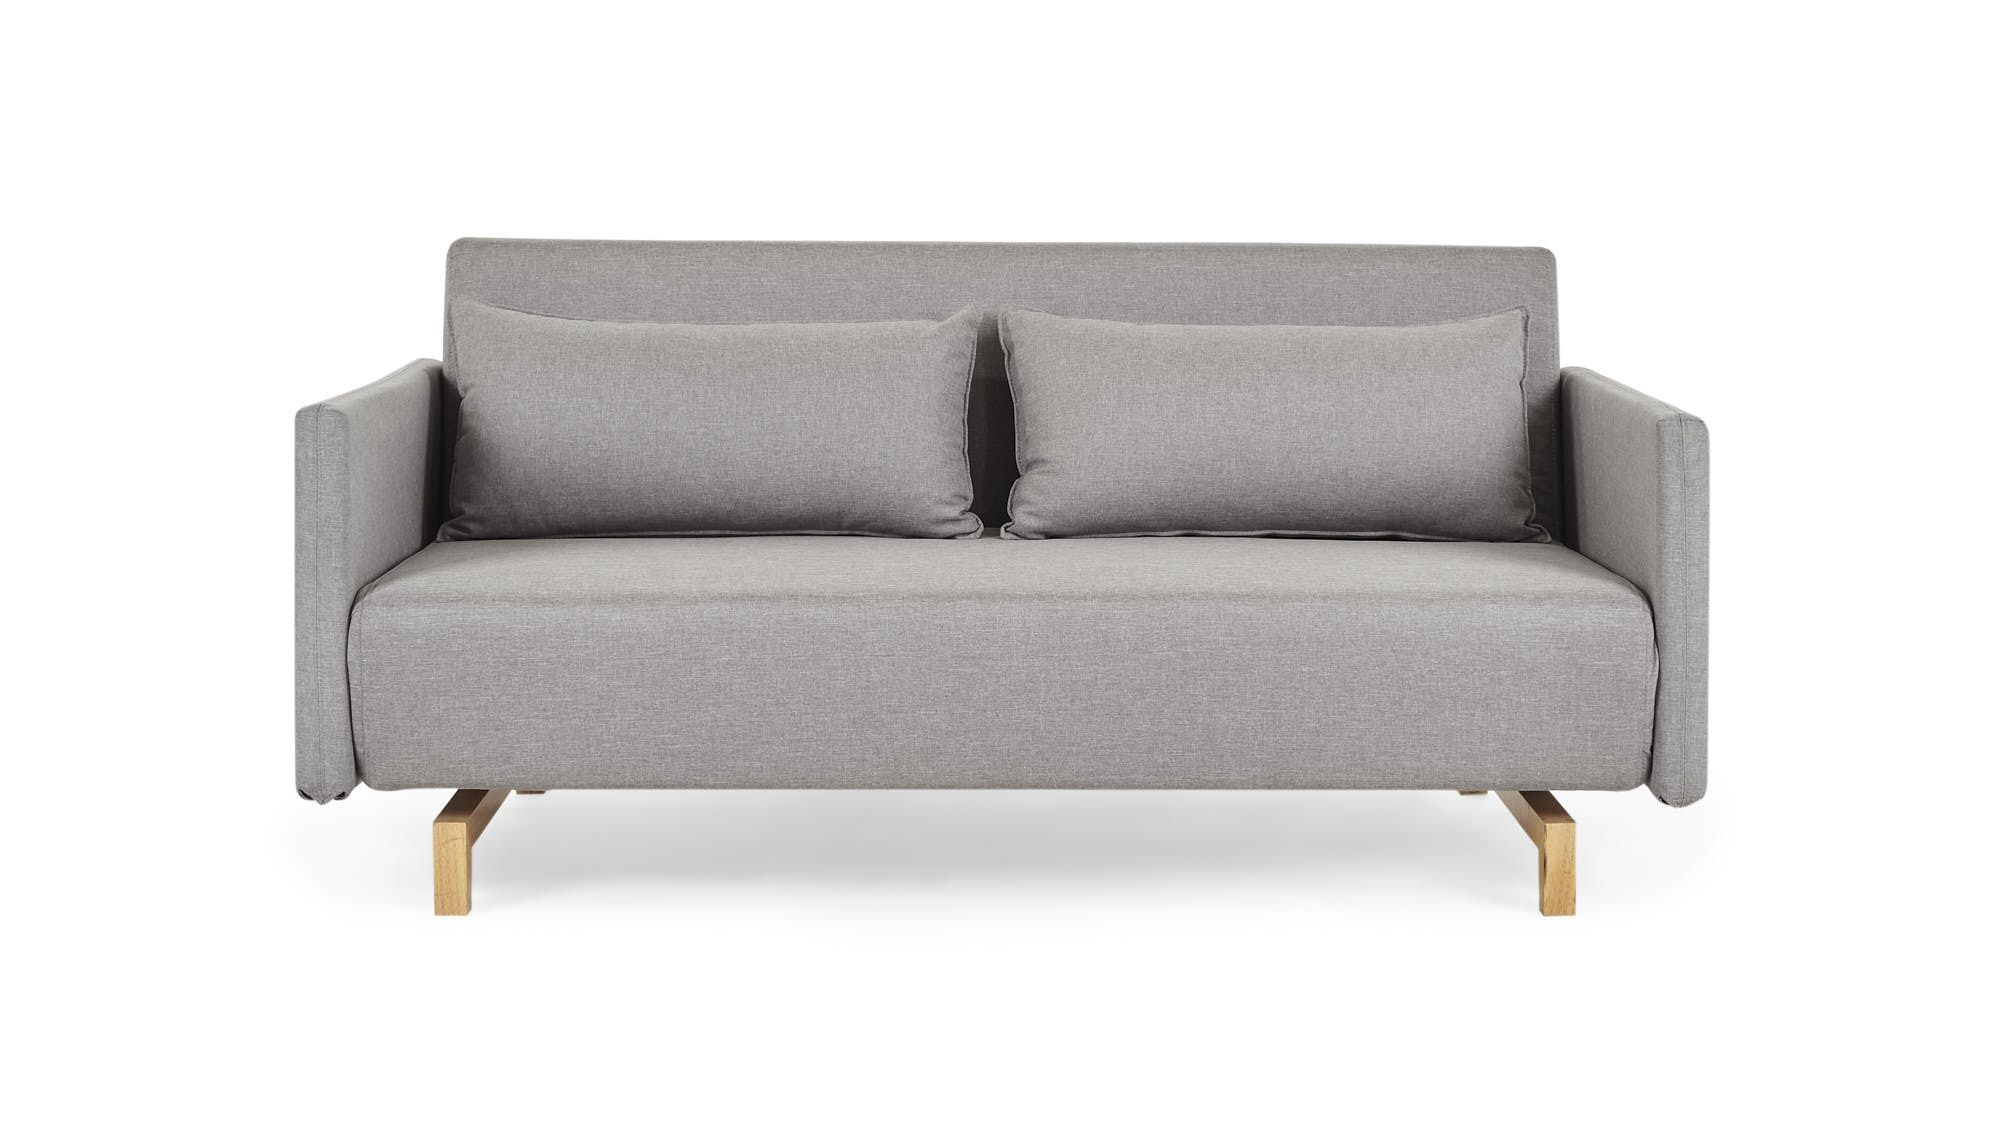 12 Affordable And Chic Small Sleeper Sofas For Tight Spaces Small Sleeper Sofa Affordable Sofa Affordable Sofa Bed